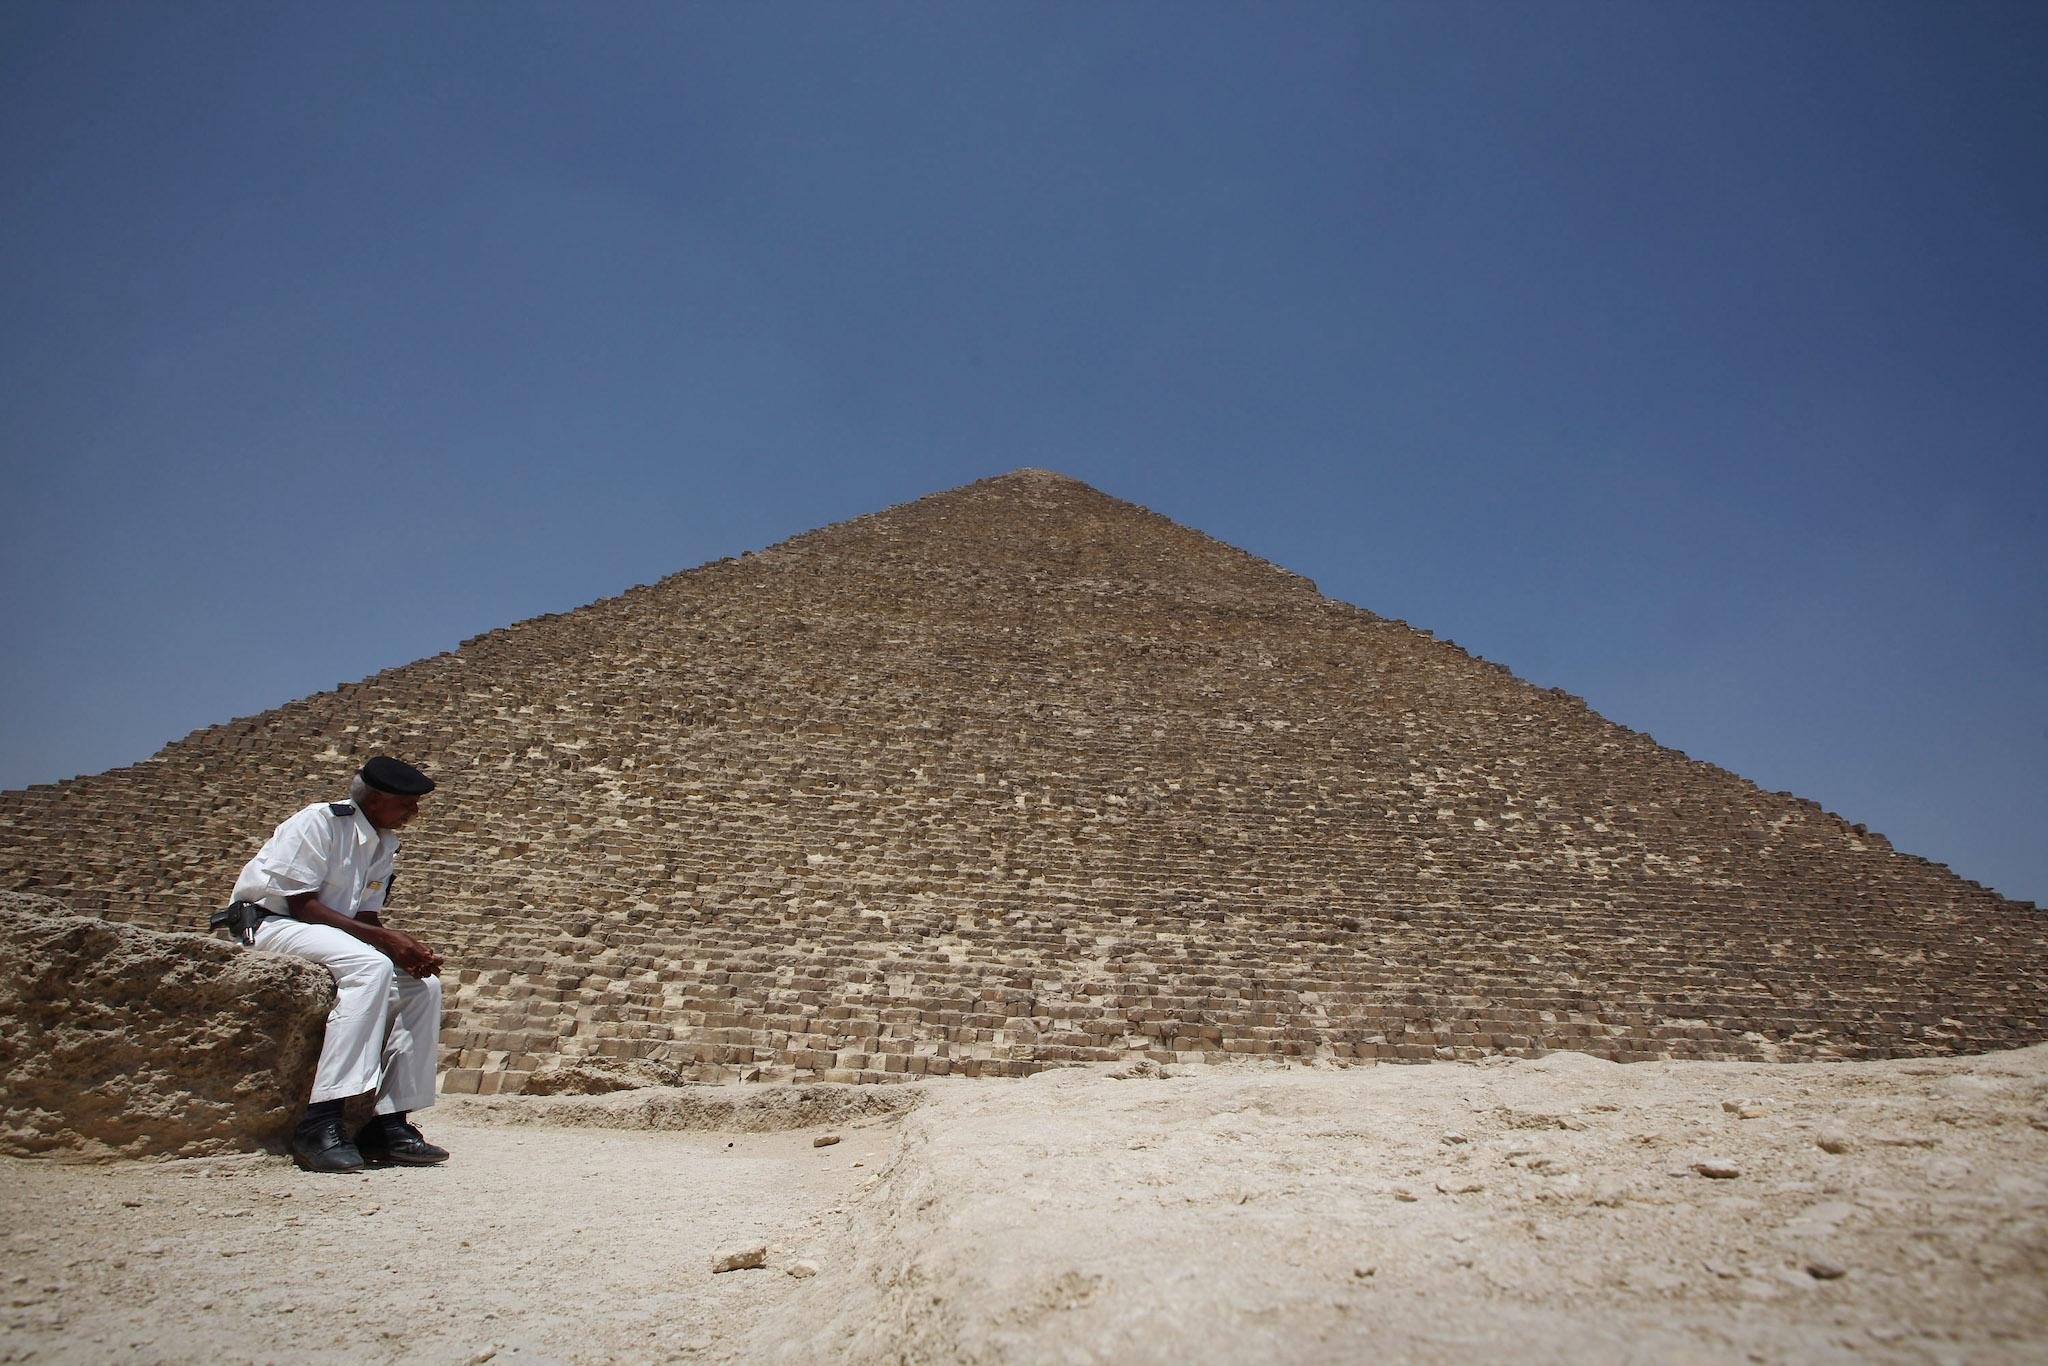 Pyramids - latest news, breaking stories and comment - The Independent